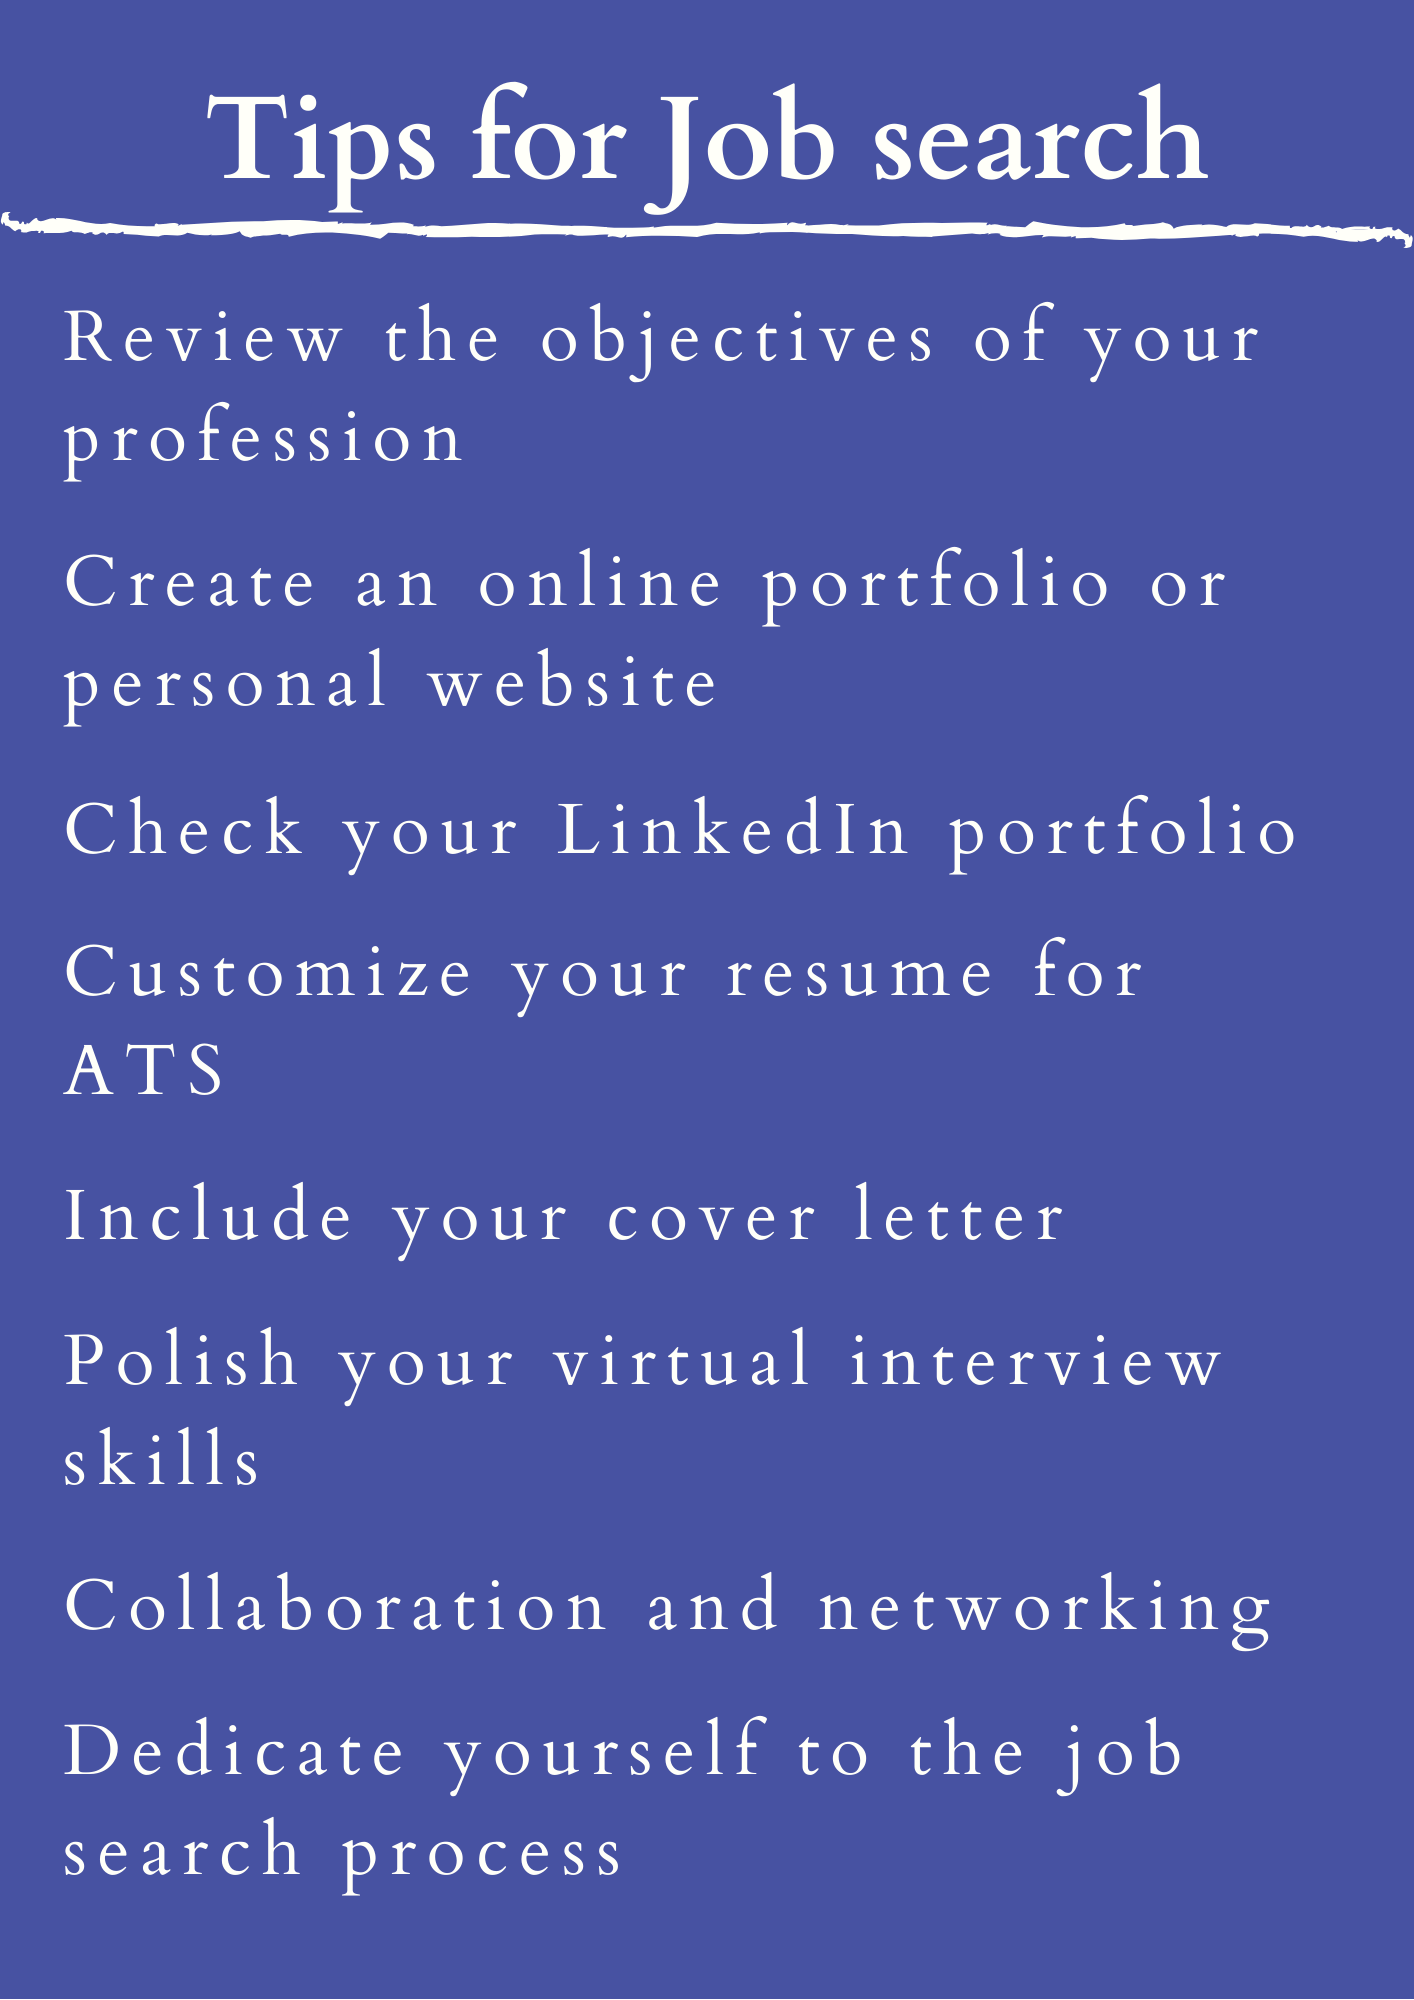 Image for part: Review the objectives of your profession